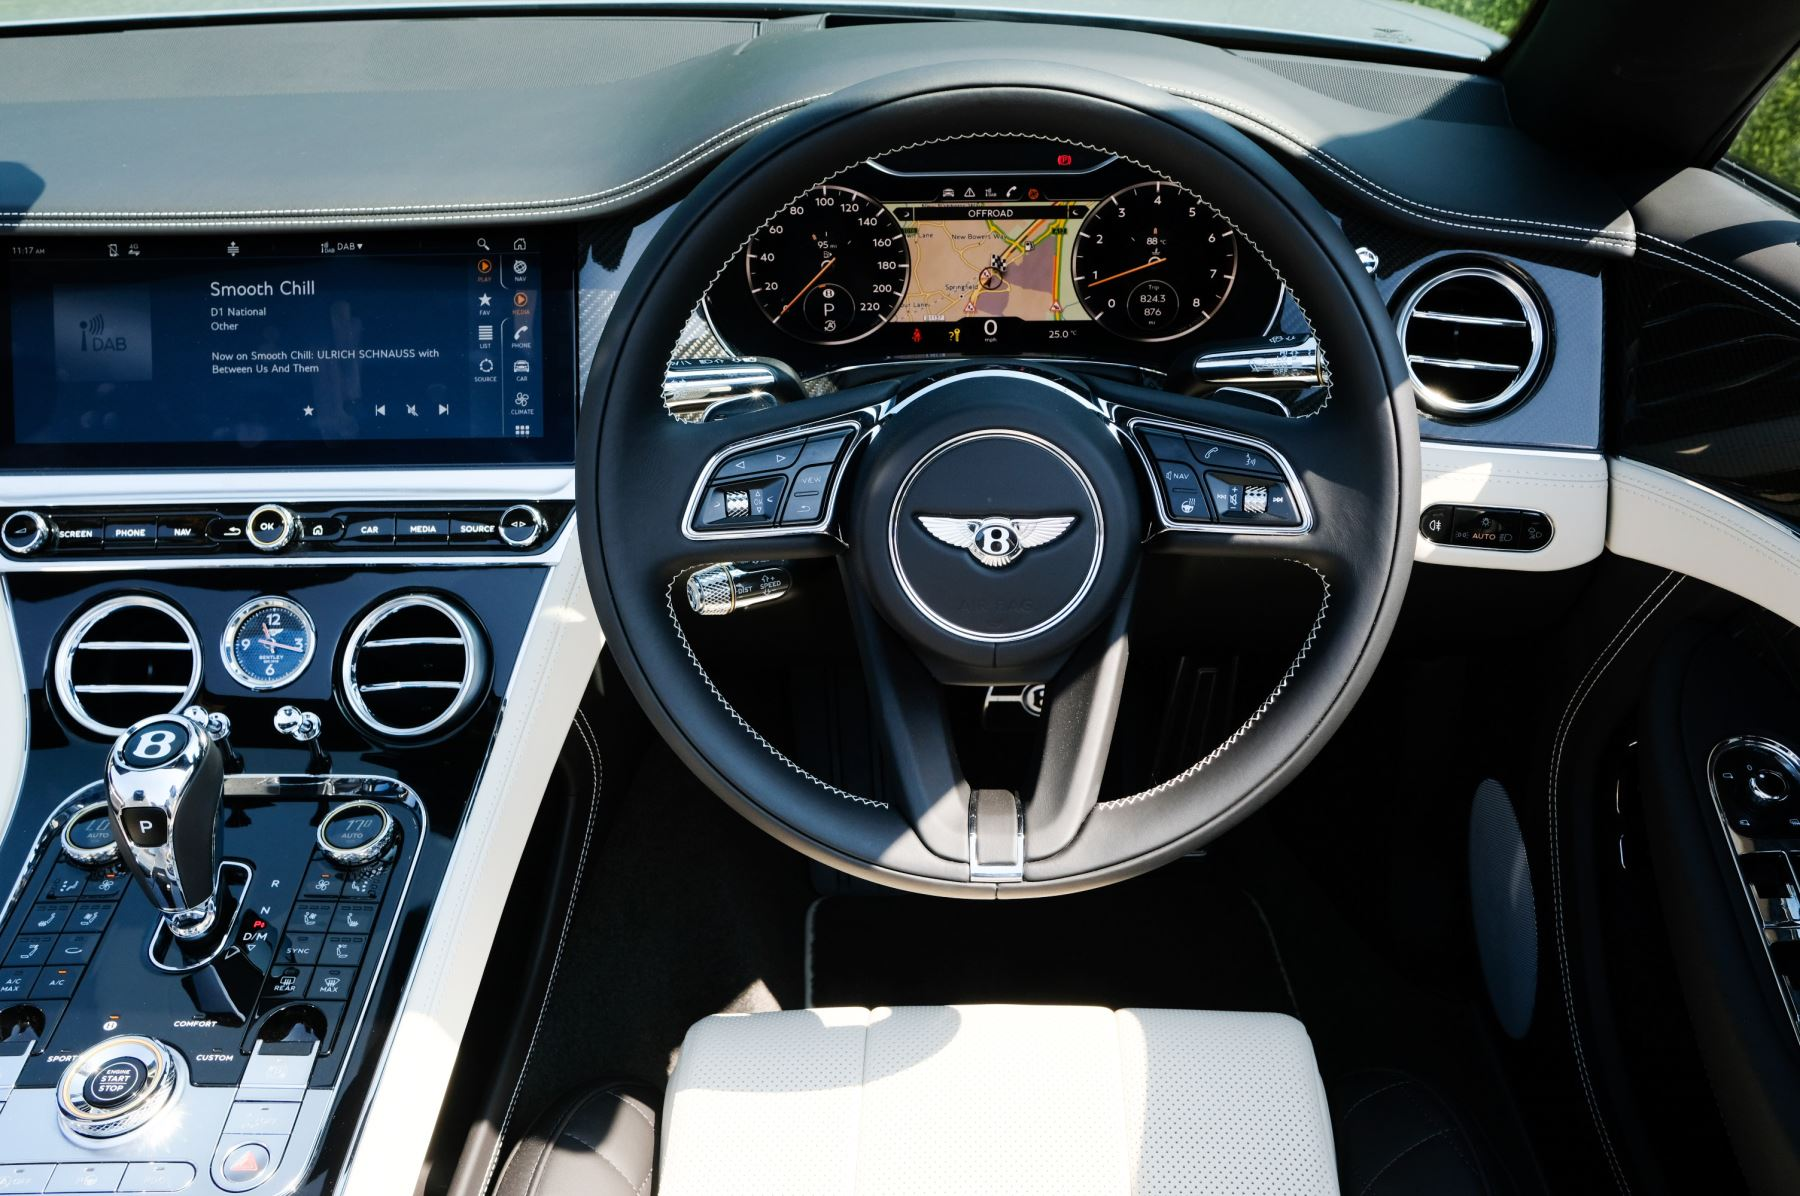 Bentley Continental GTC 4.0 V8 - Mulliner Driving Specification and Blackline Specification with 22 Inch Alloys image 14